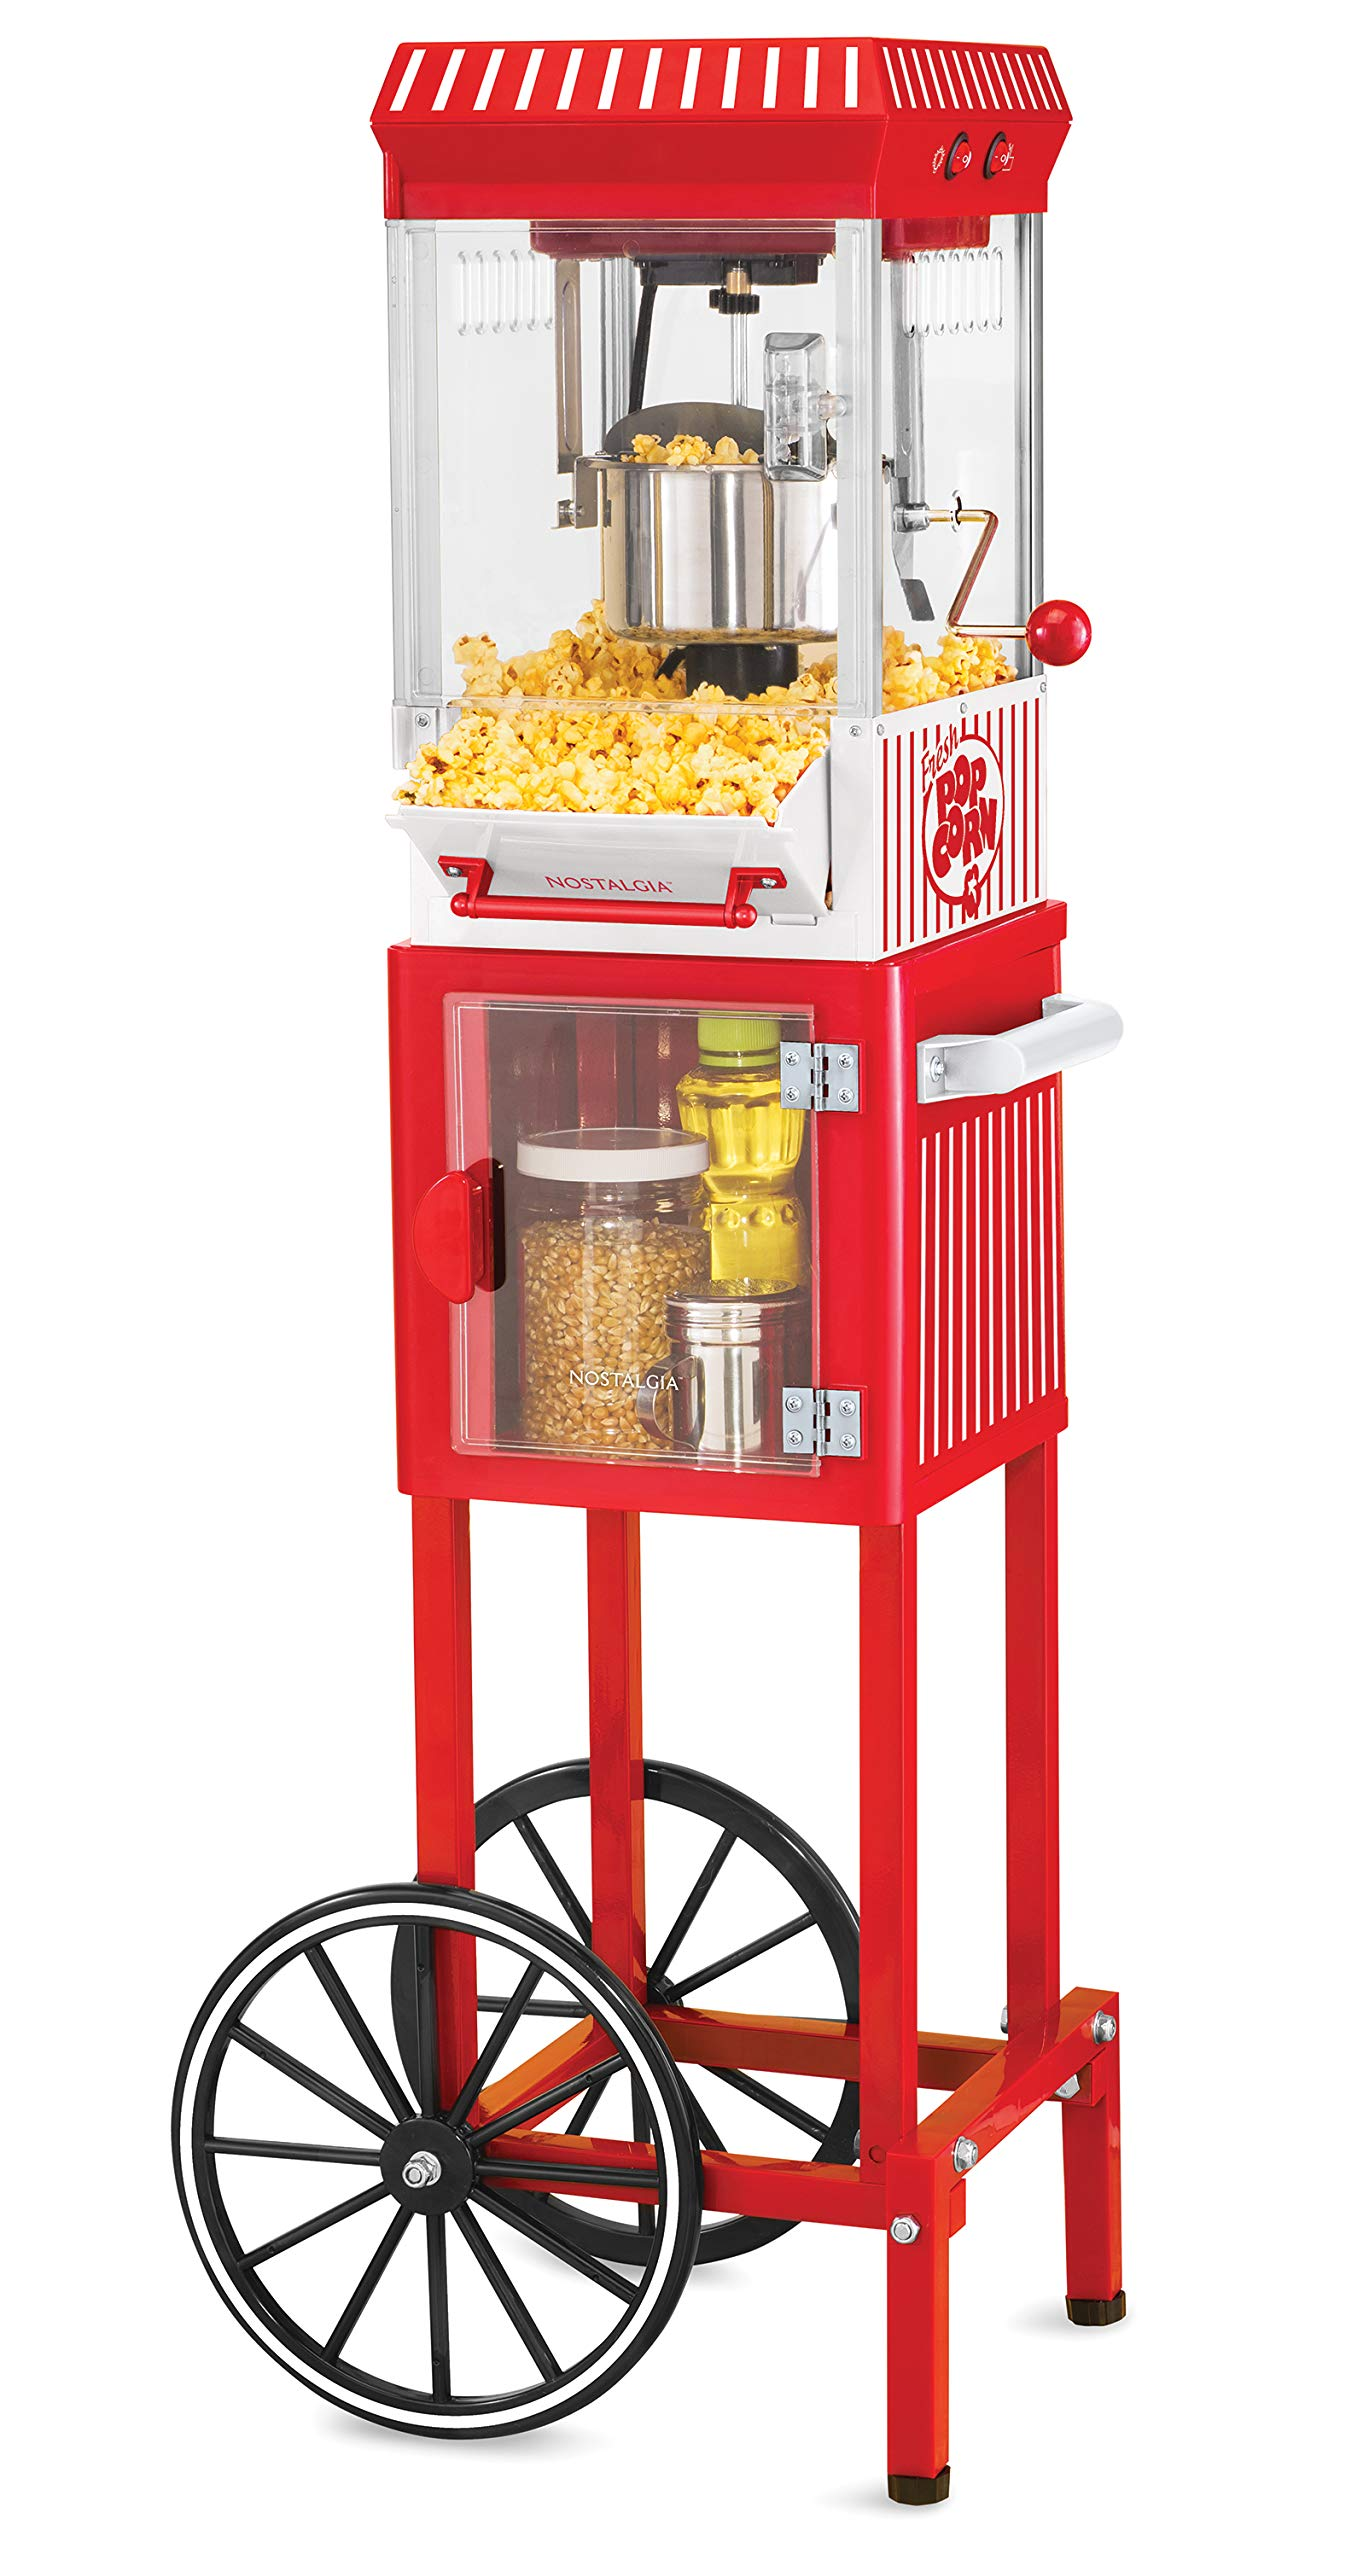 Nostalgia KPM200CART Vintage 2.5 oz Professional Kettle Popcorn & Concession Cart, 45'' Tall, Makes 10 Cups of Popcorn, with Kernel Measuring Cup, Oil Measuring Spoon & Metal Scoop by NOSTALGIA